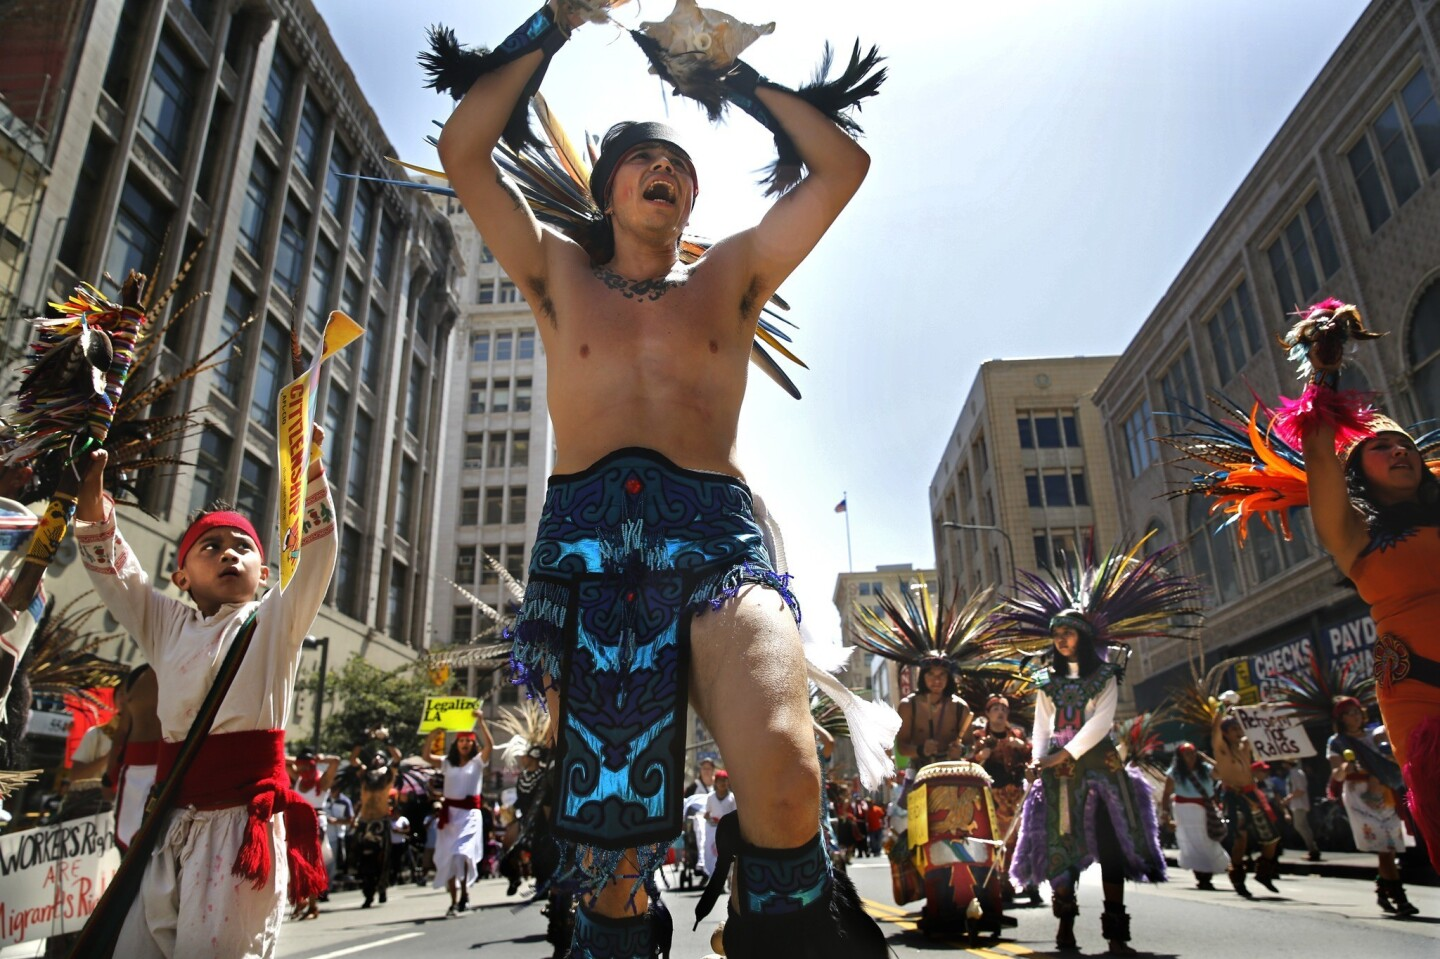 Costumed members of the Danza Mexica Cuauhtemoc political Aztec dance group perform on Broadway in downtown L.A. earlier this month.